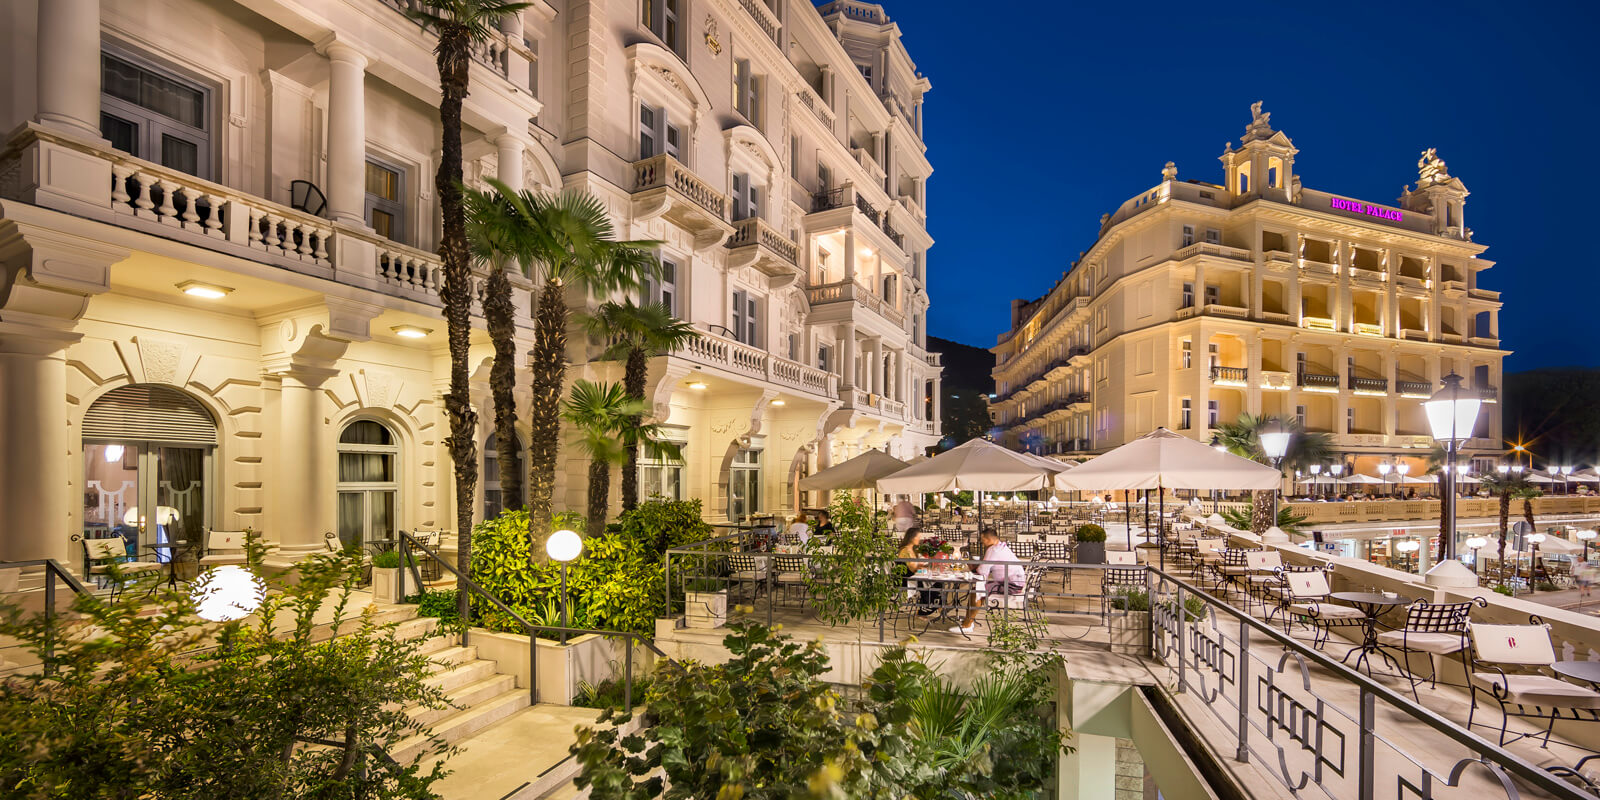 hotel palace bellevue opatija croatia remisens hotels